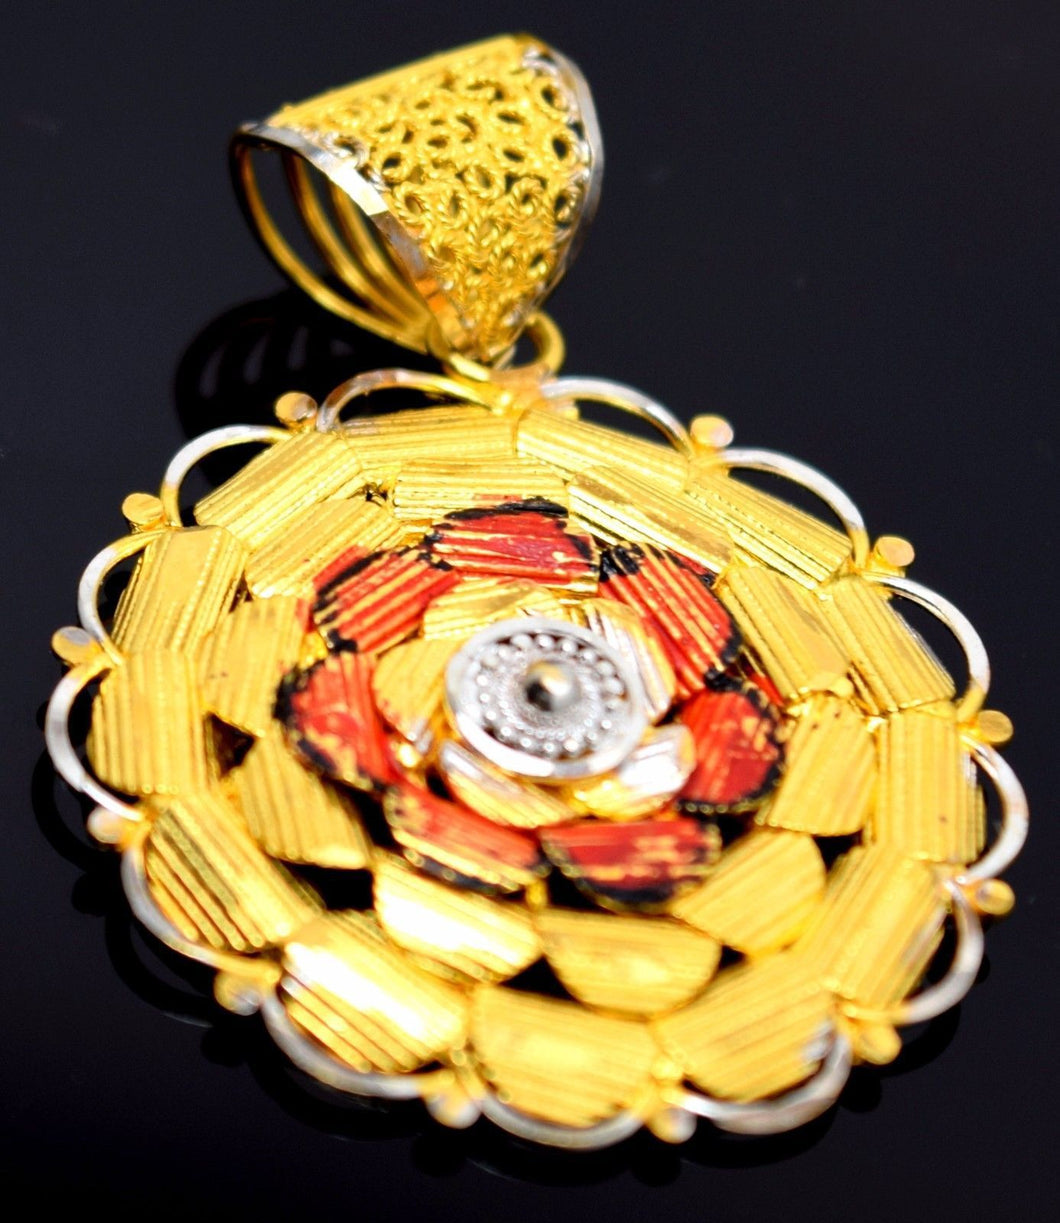 22k 22ct Solid Gold ELEGANT UNIQUE Flower Pendant Locket P49 - Royal Dubai Jewellers